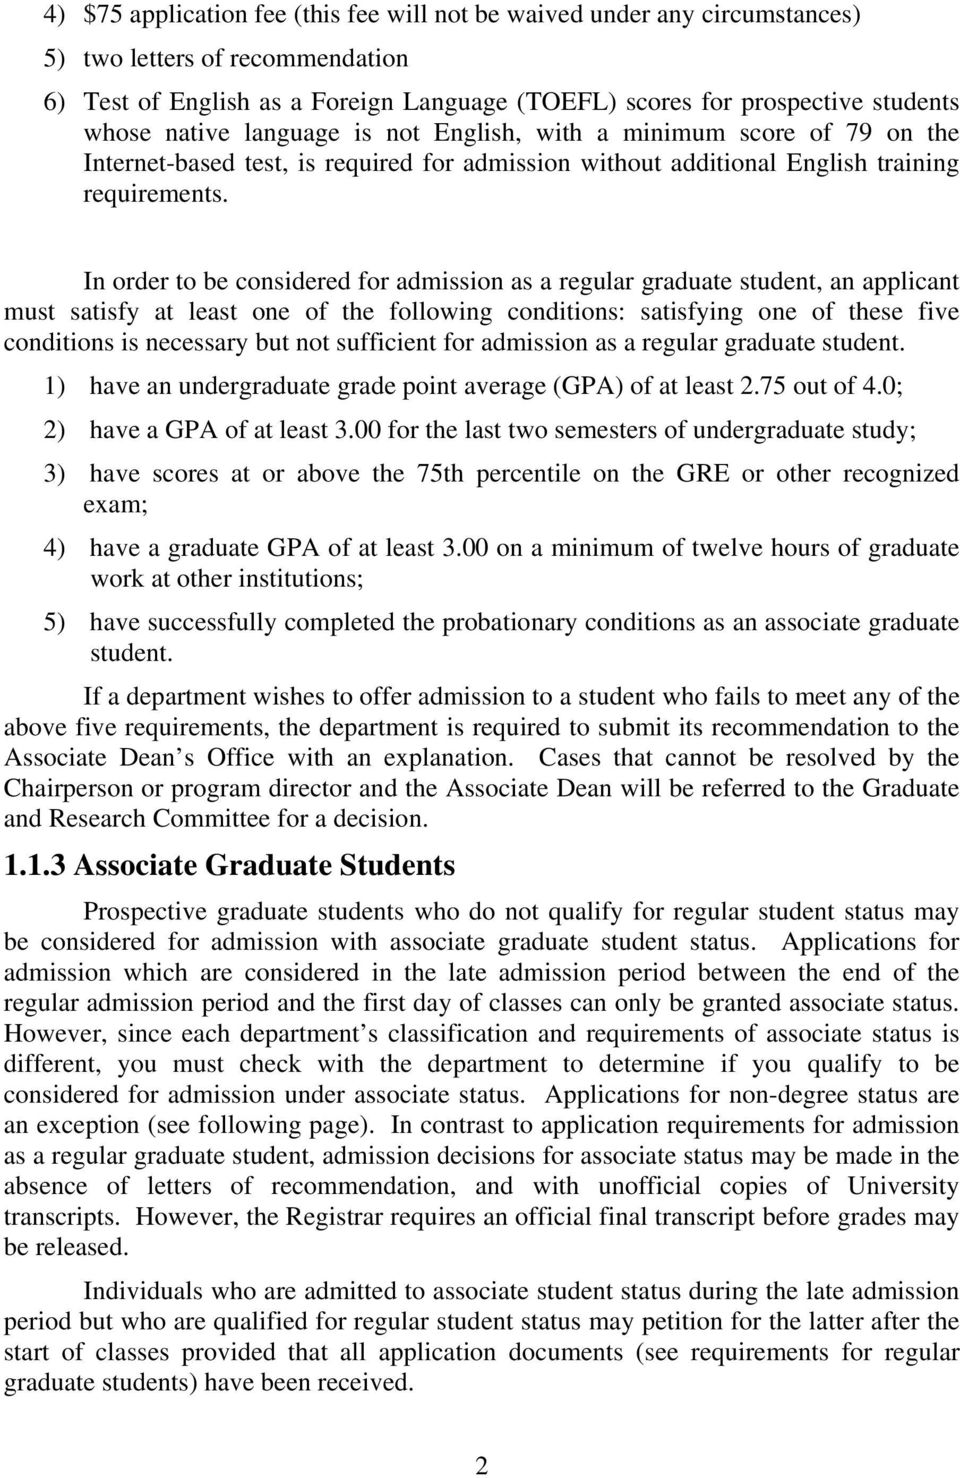 In order to be considered for admission as a regular graduate student, an applicant must satisfy at least one of the following conditions: satisfying one of these five conditions is necessary but not